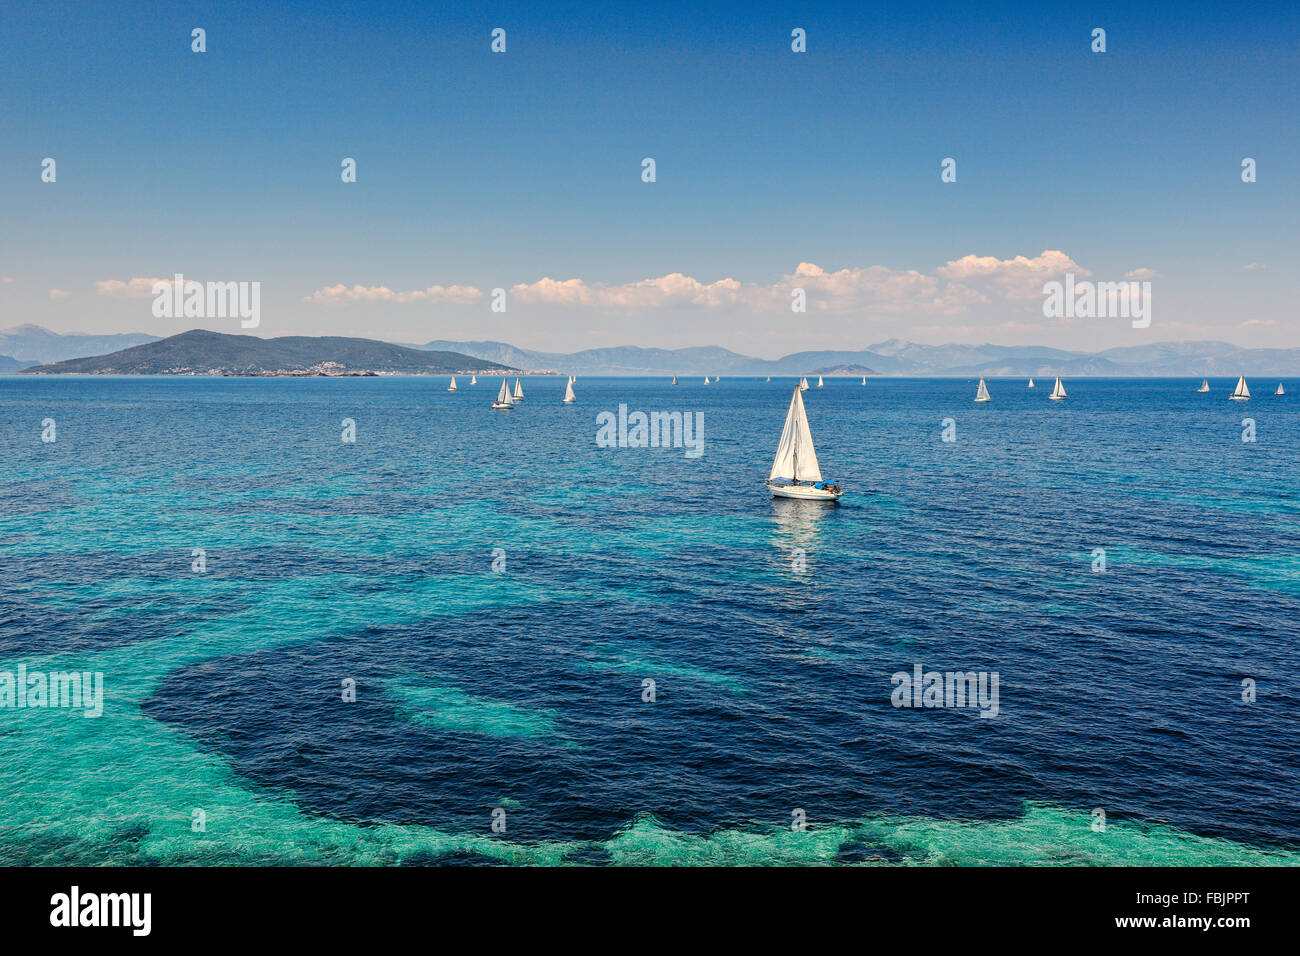 Sail boats near Aegina island, Greece - Stock Image